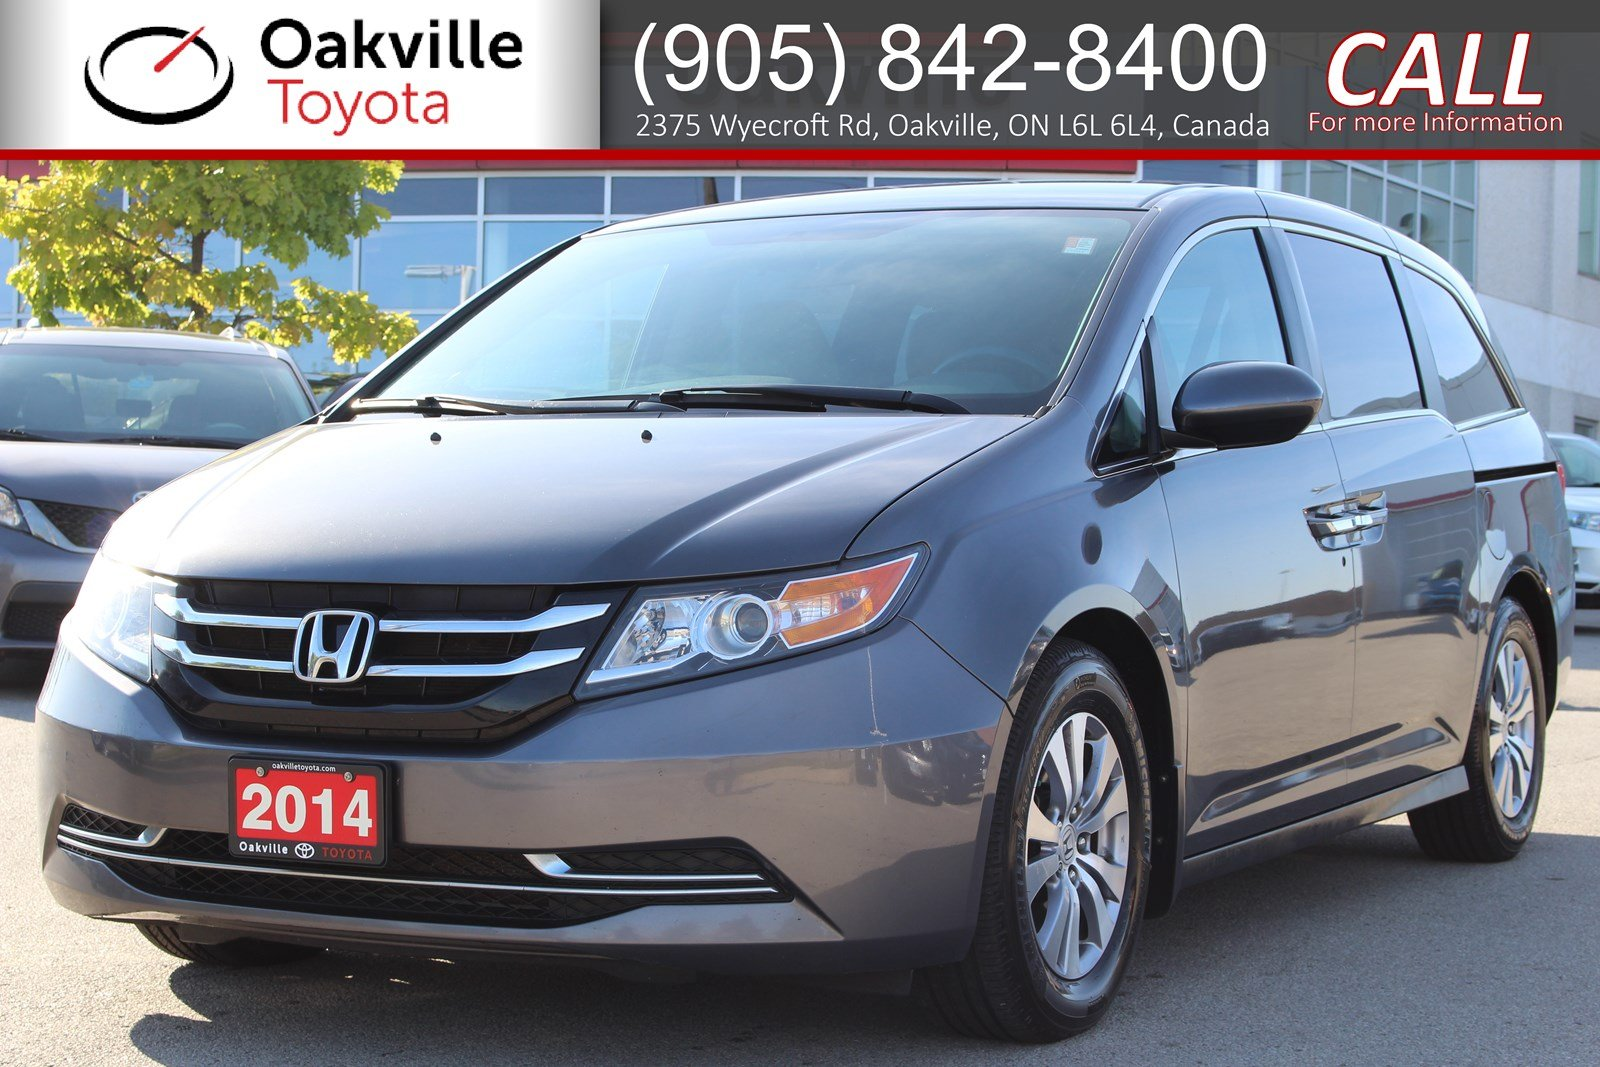 Pre-Owned 2014 Honda Odyssey EX with Clean Carfax and One Owner